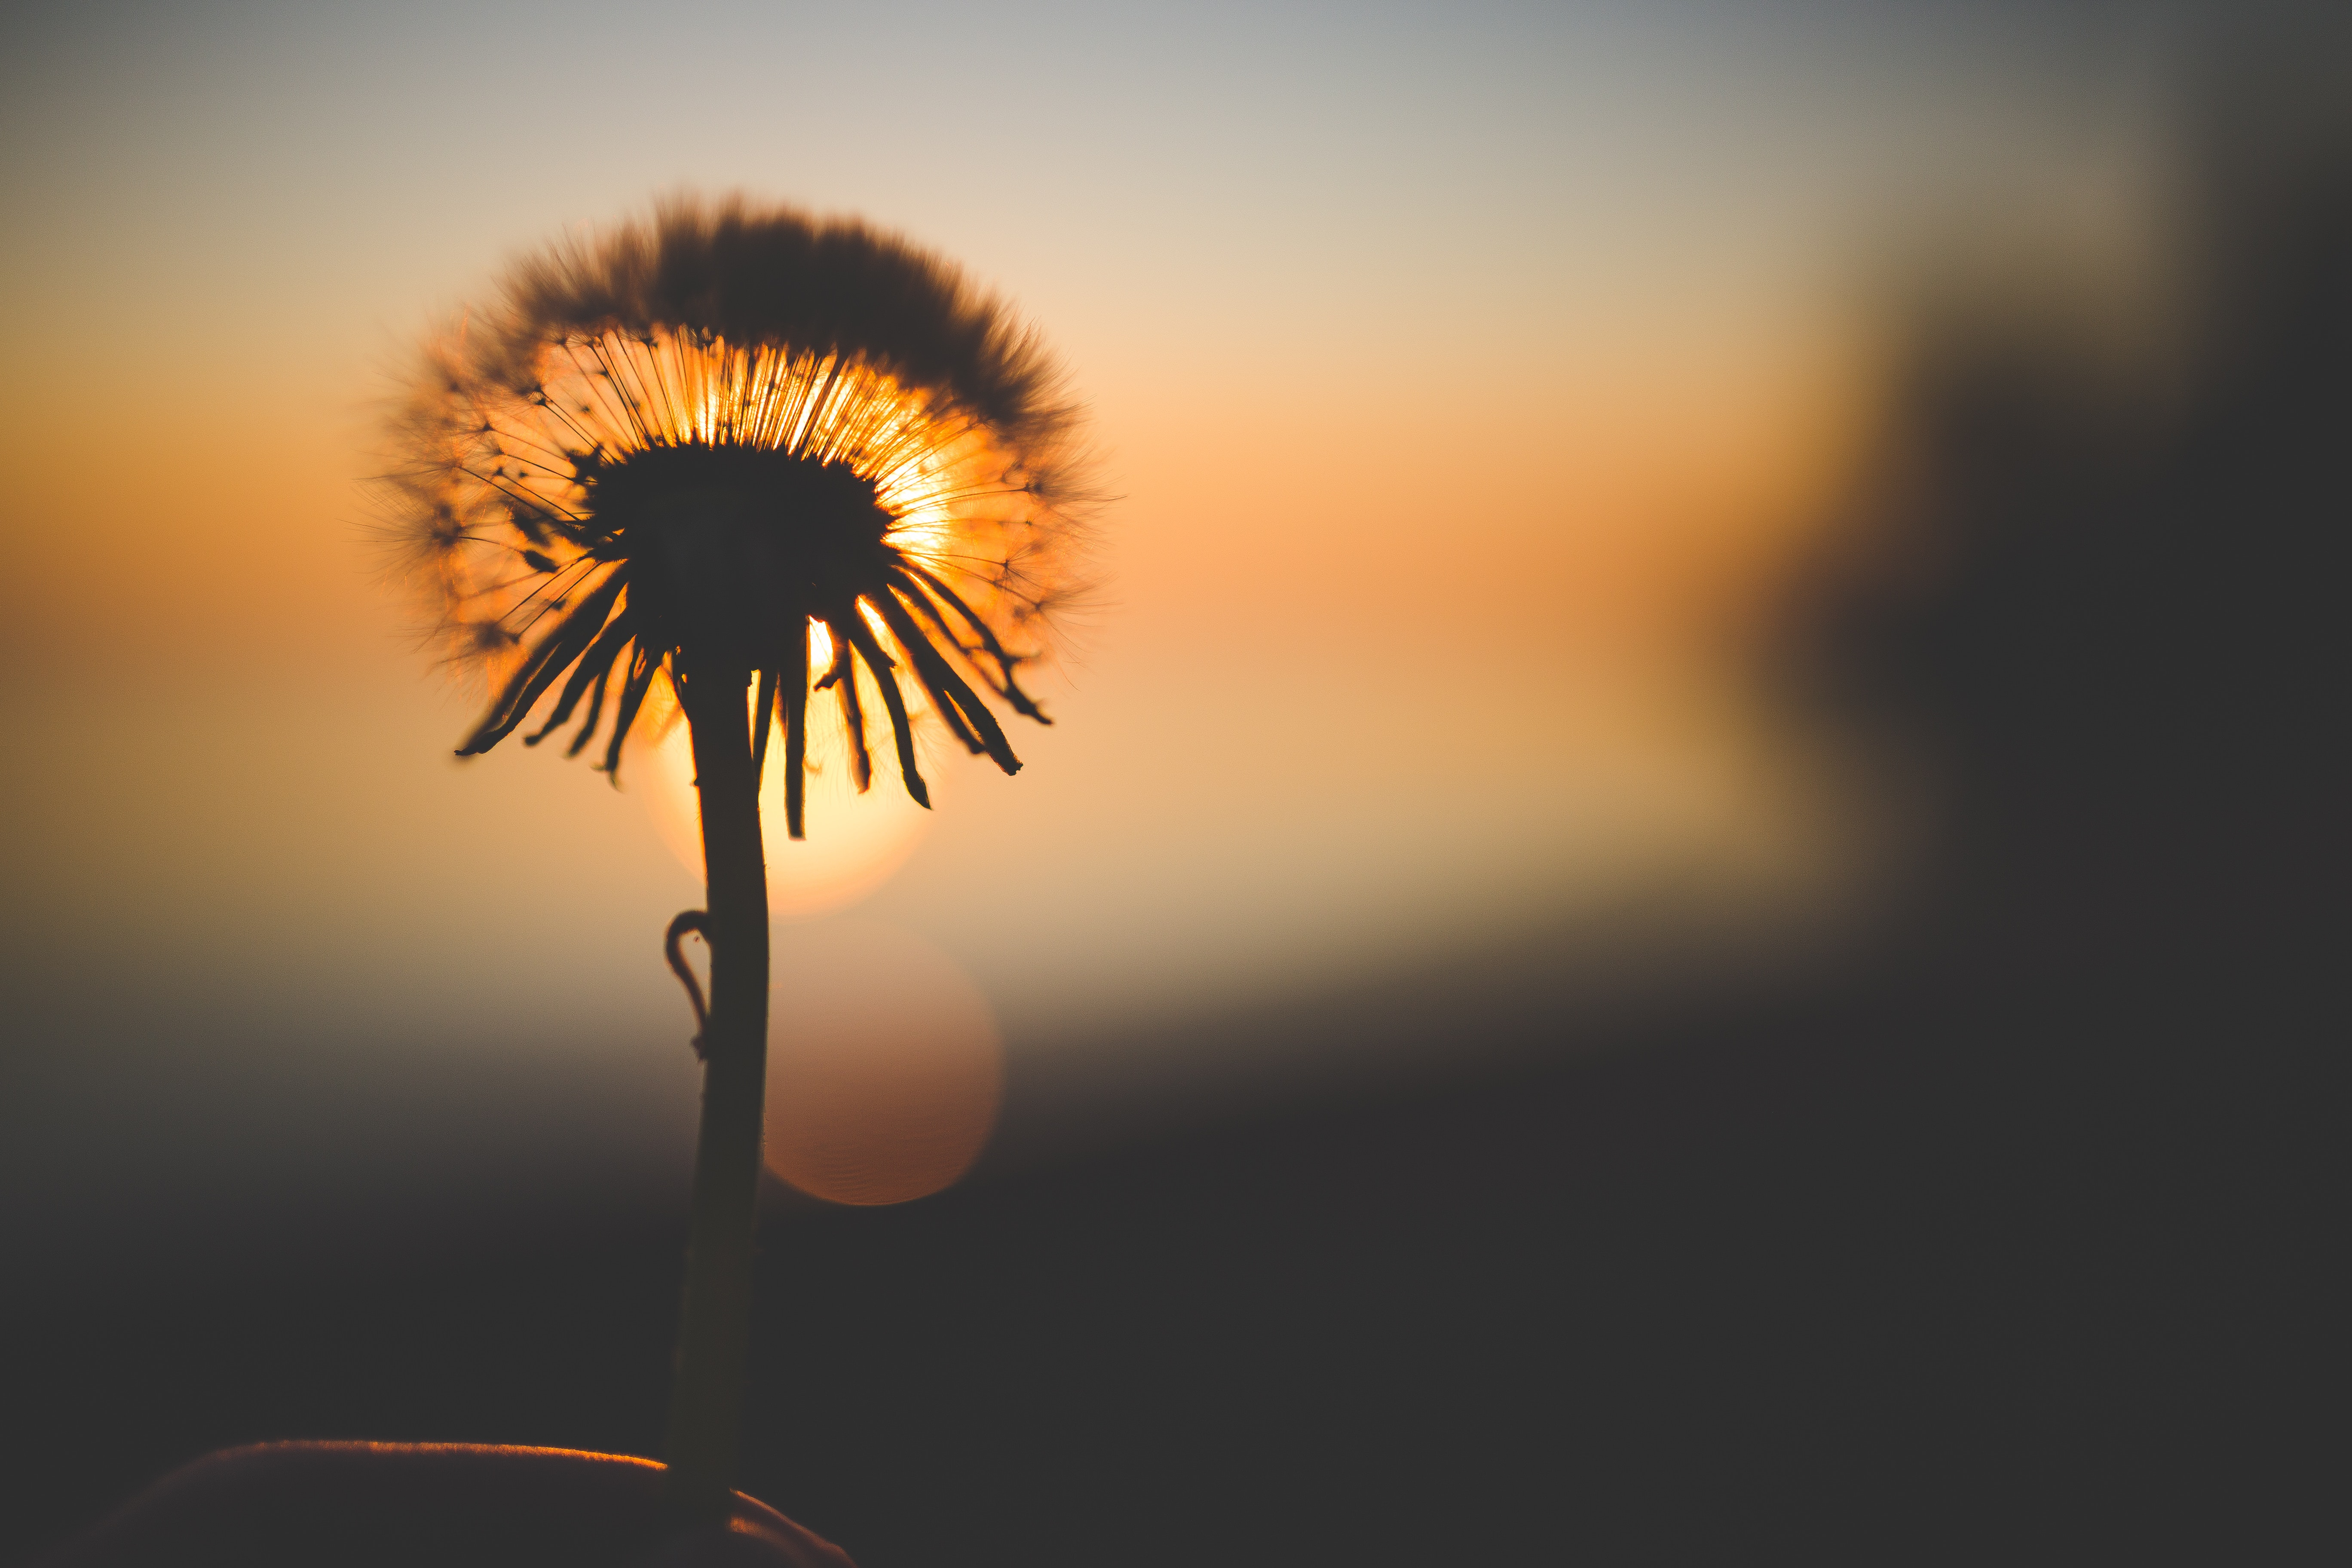 Silhouette of Dandelion Behind Sun, Nature, Silhouette, Sunset, HD wallpaper, HQ Photo